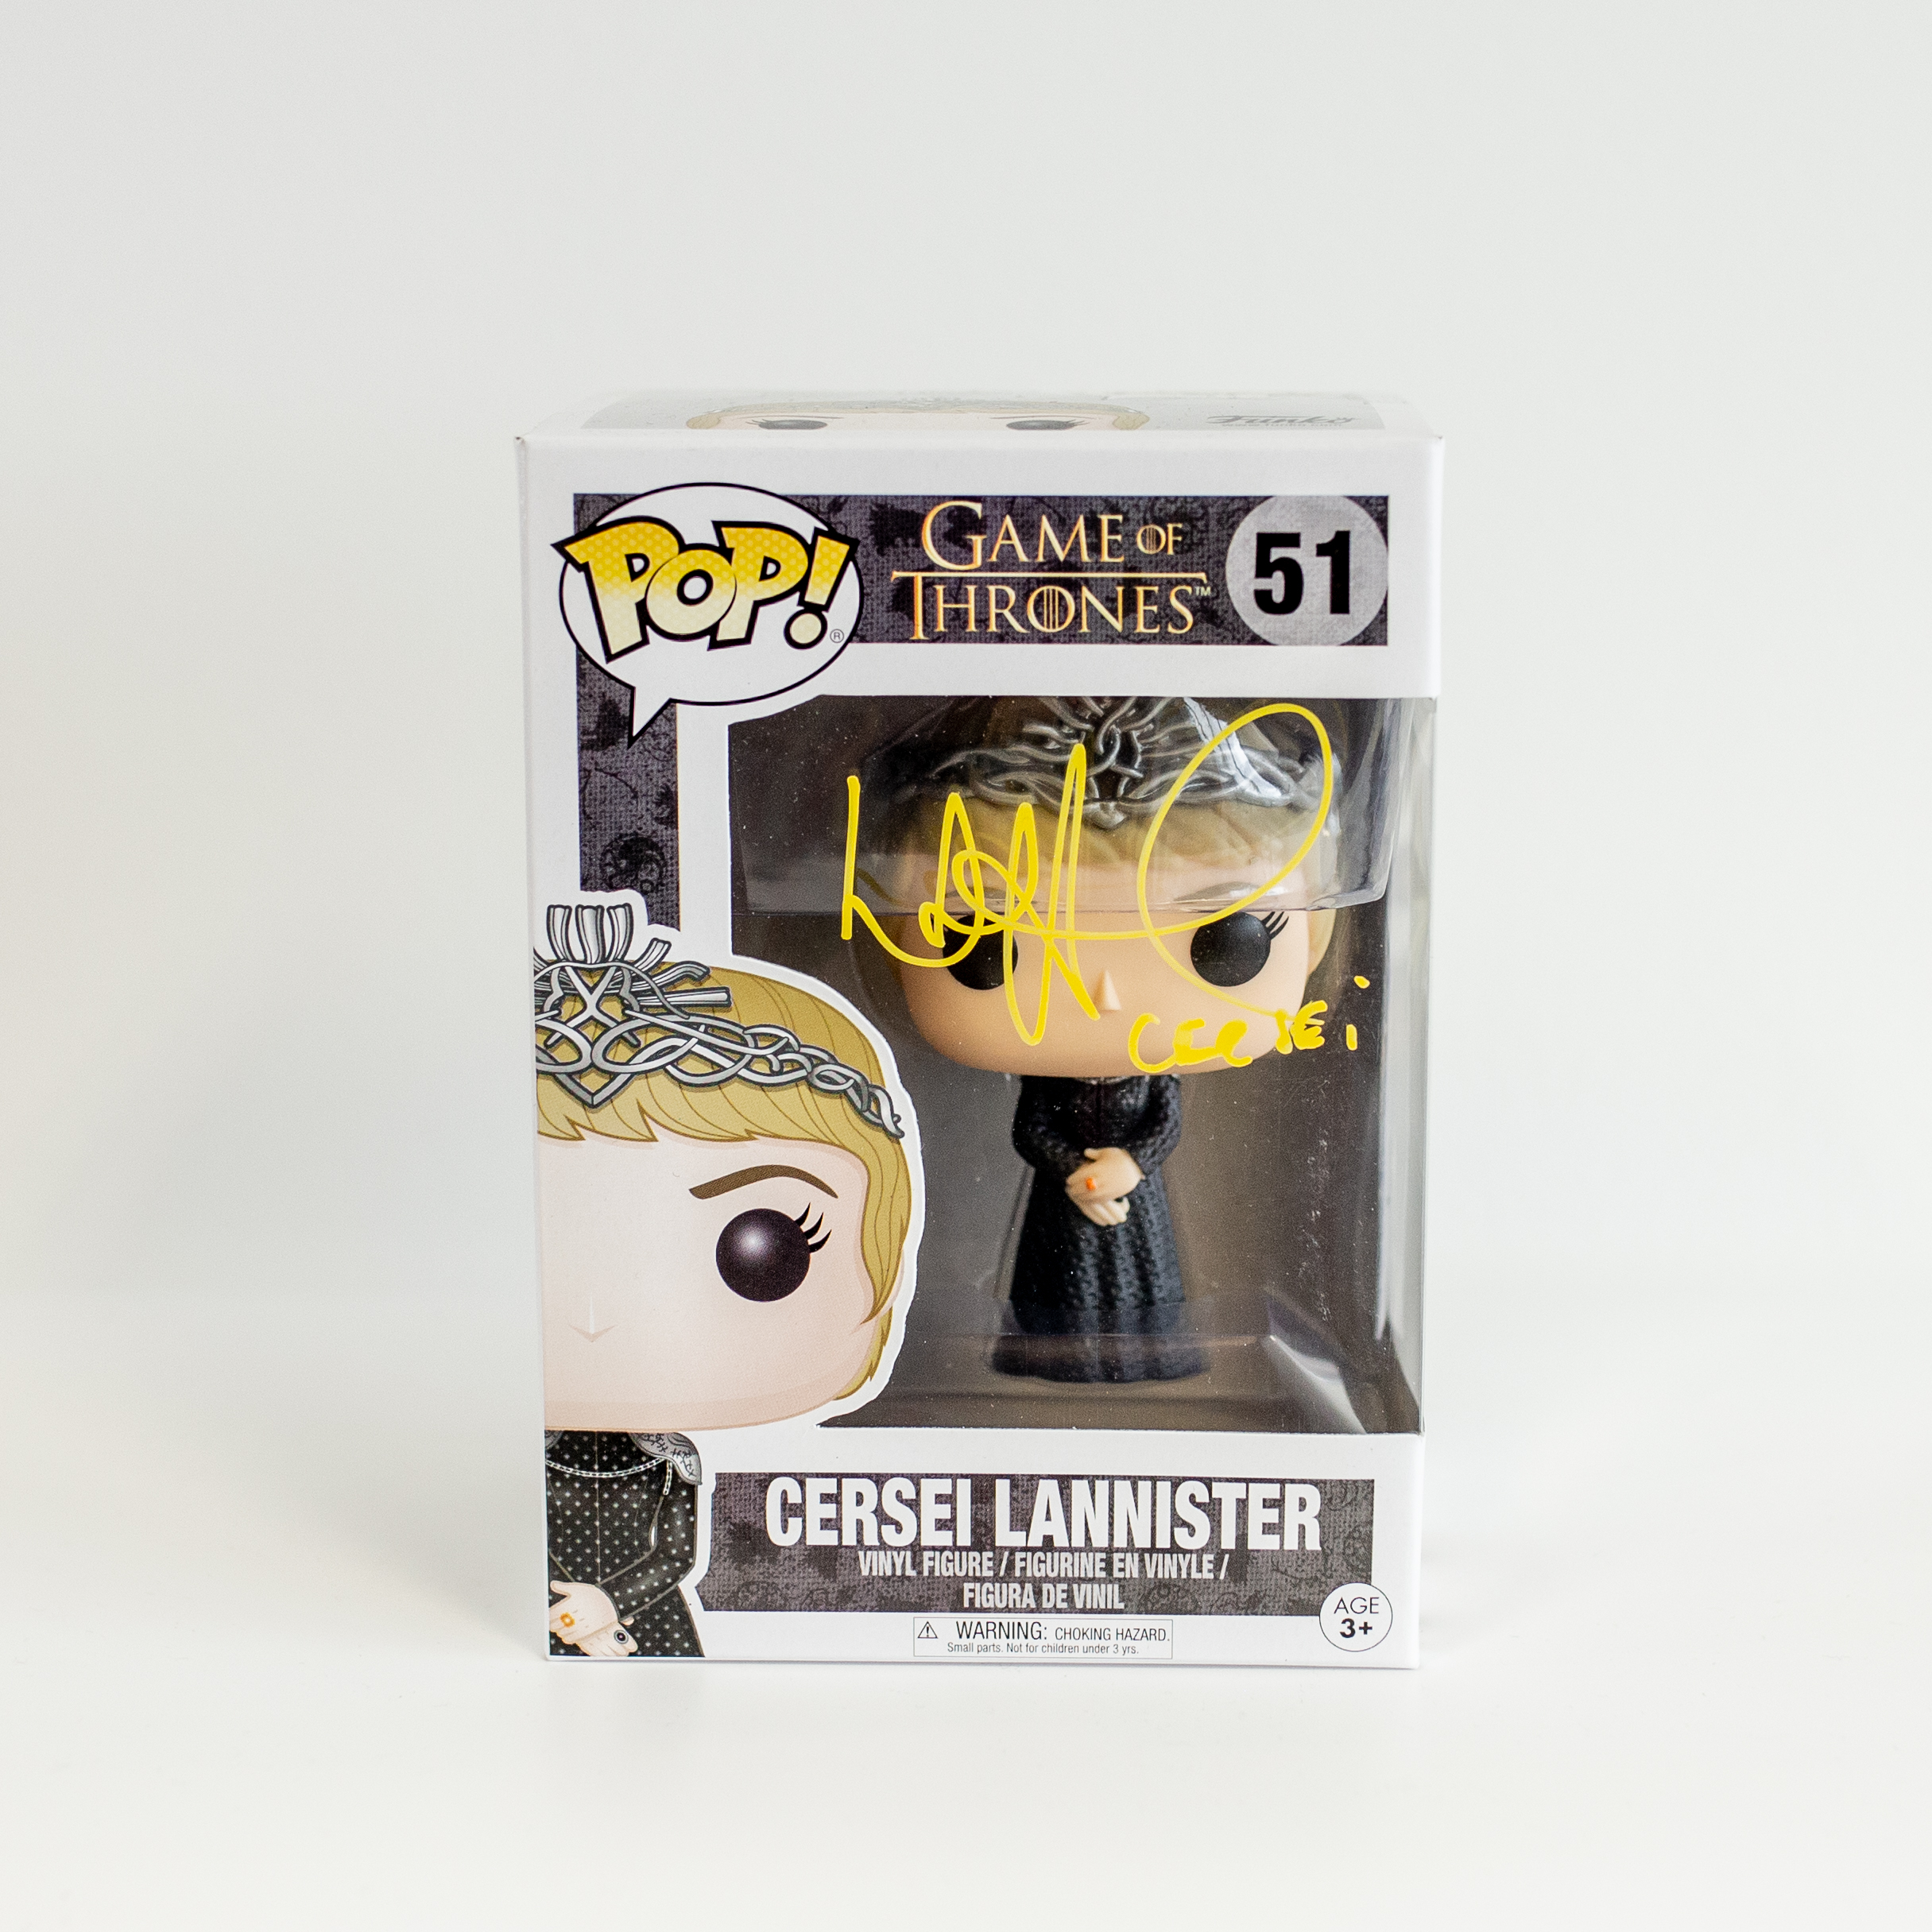 Lena Headey Original Autogramm auf Funko POP! Game of Thrones - Cersei Lannister (Gelbe Signatur)